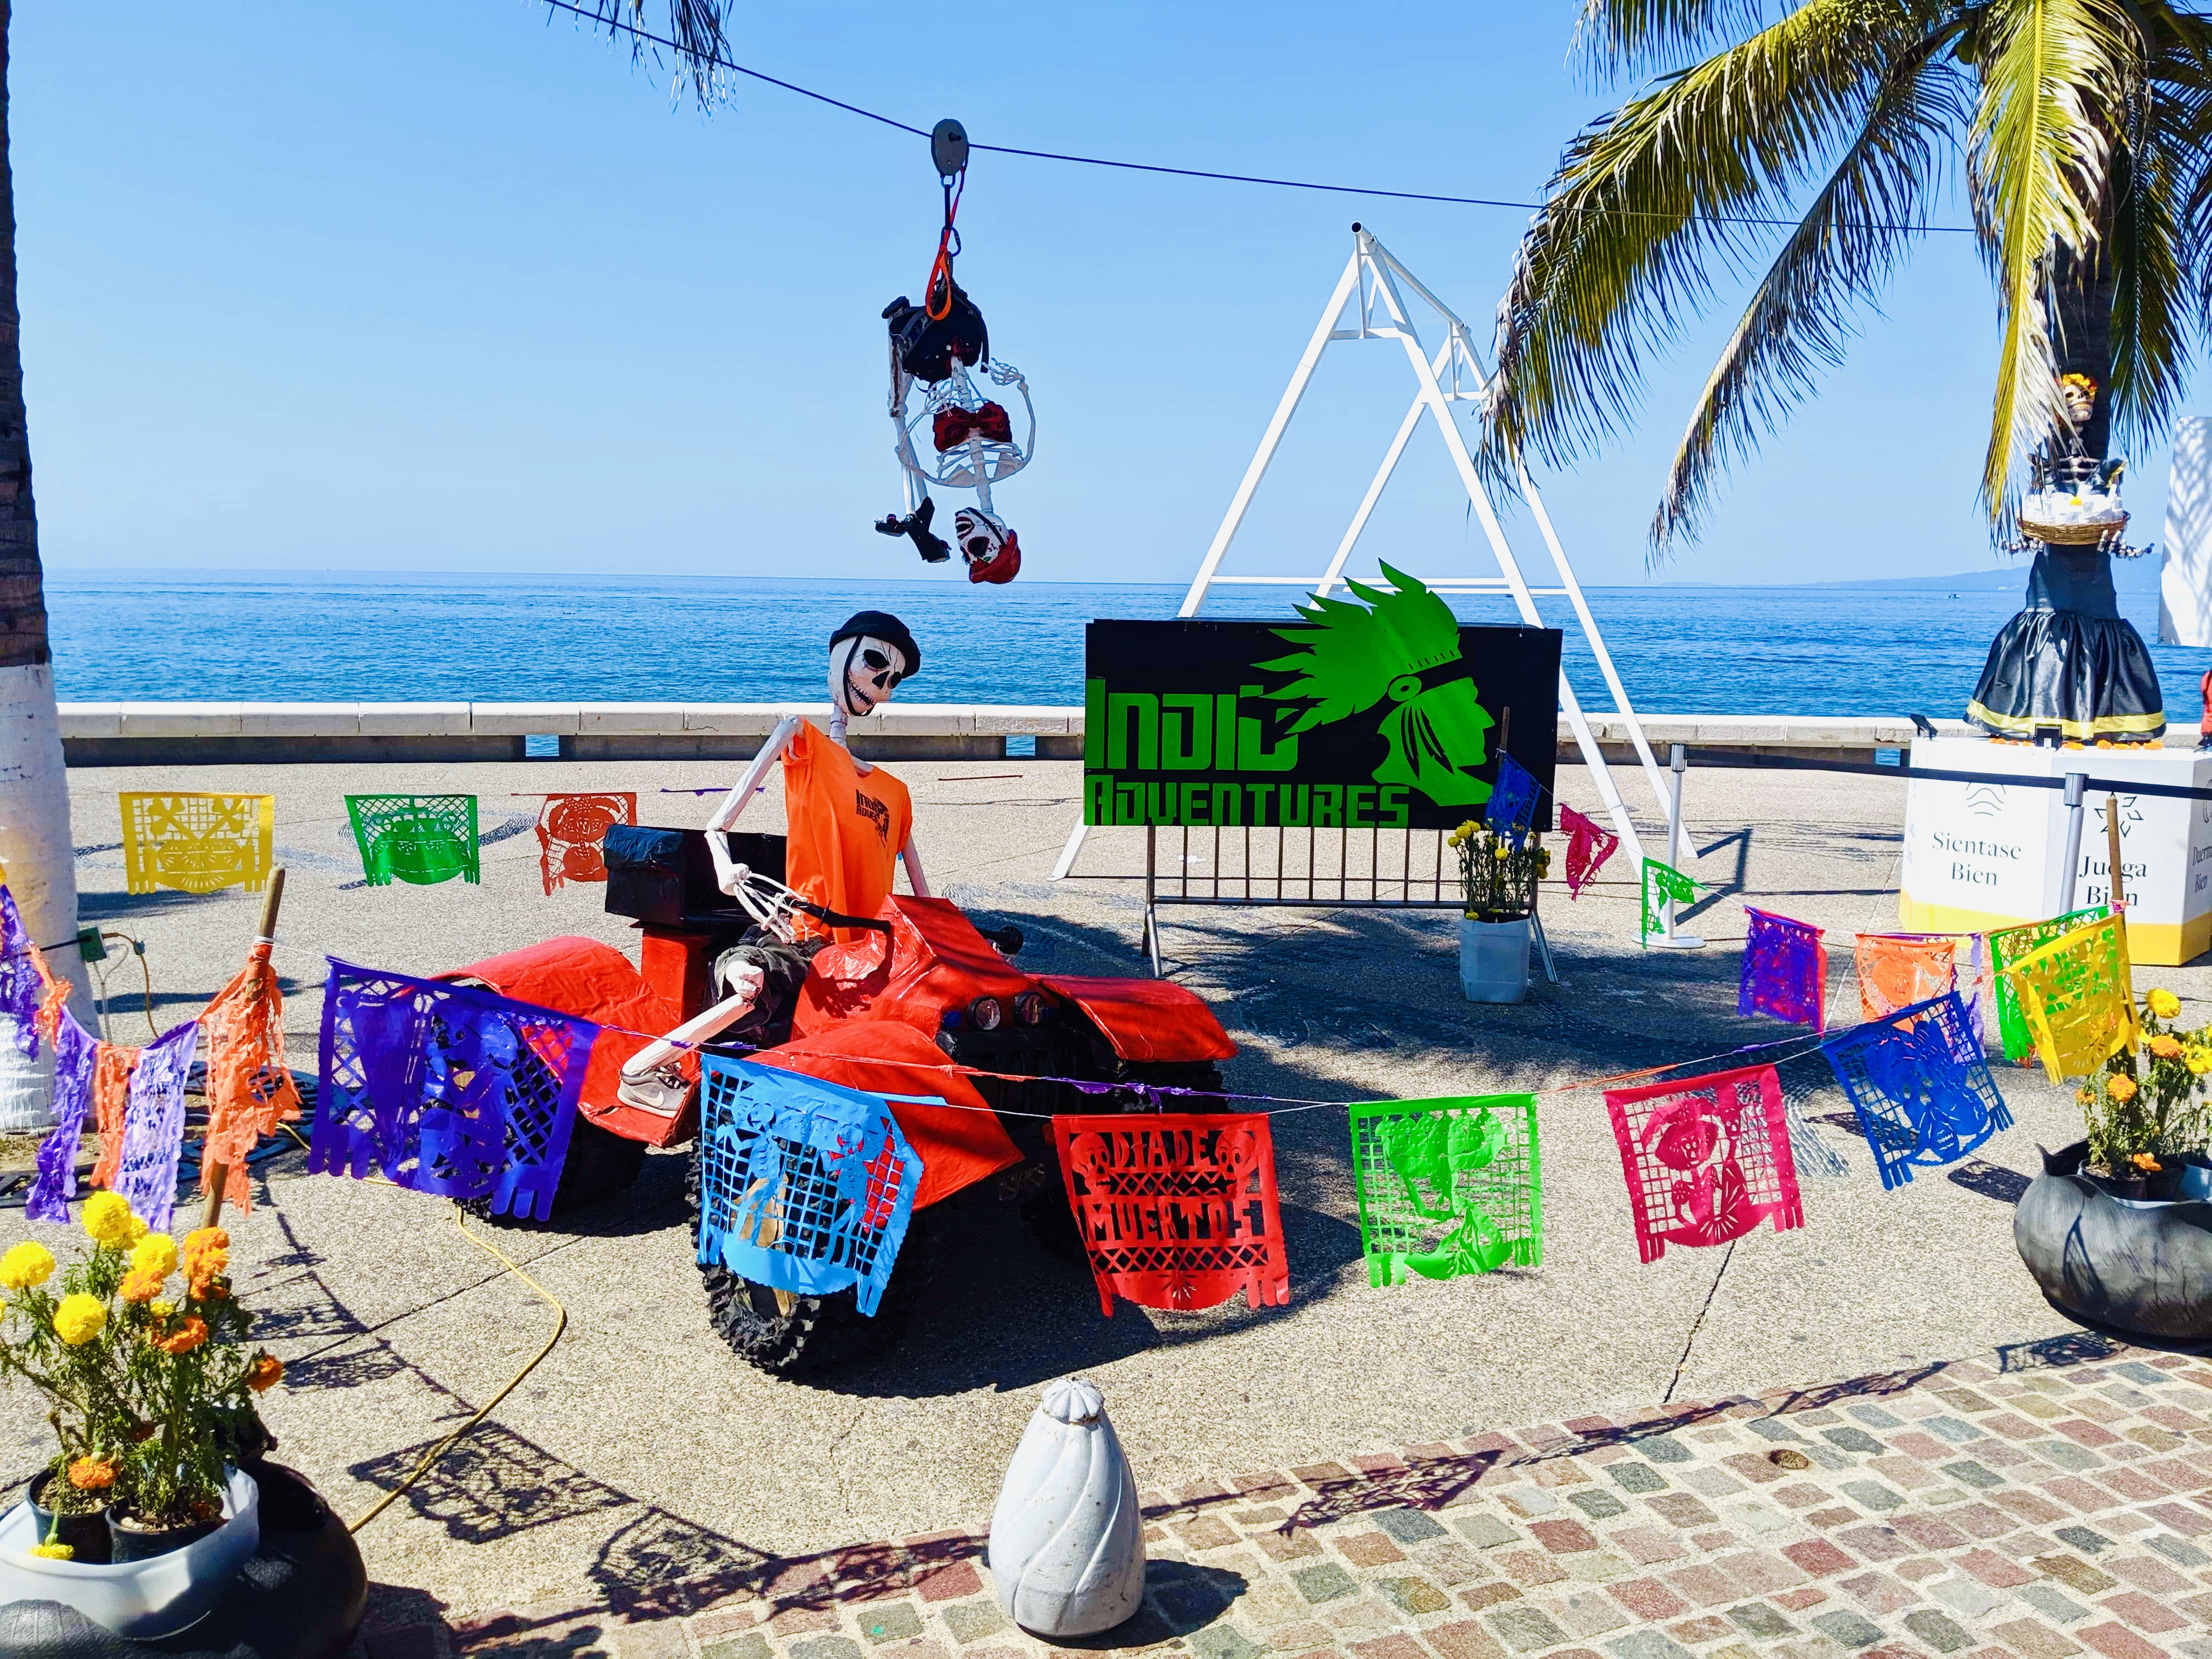 Day of the Dead skeleton dressed up on an atv on Malecon, with ocean in background